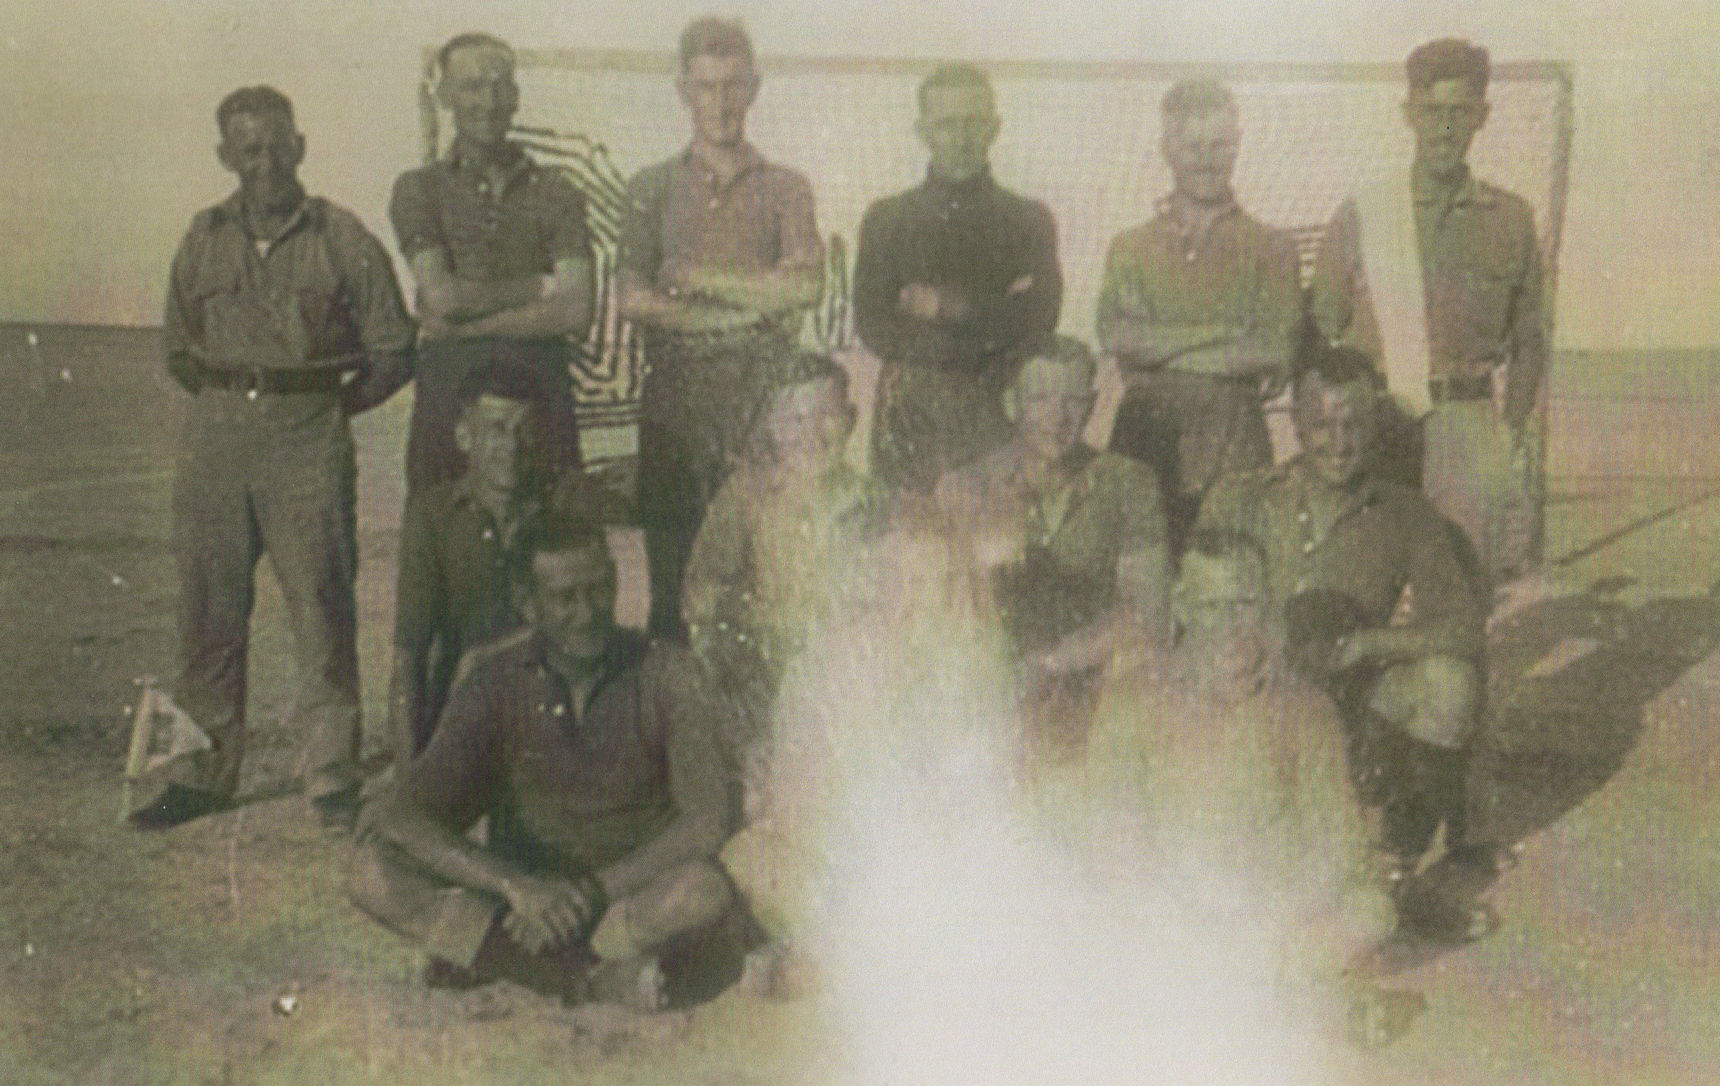 My Dad (in the back row far right) photo taken in Iraq during the War.